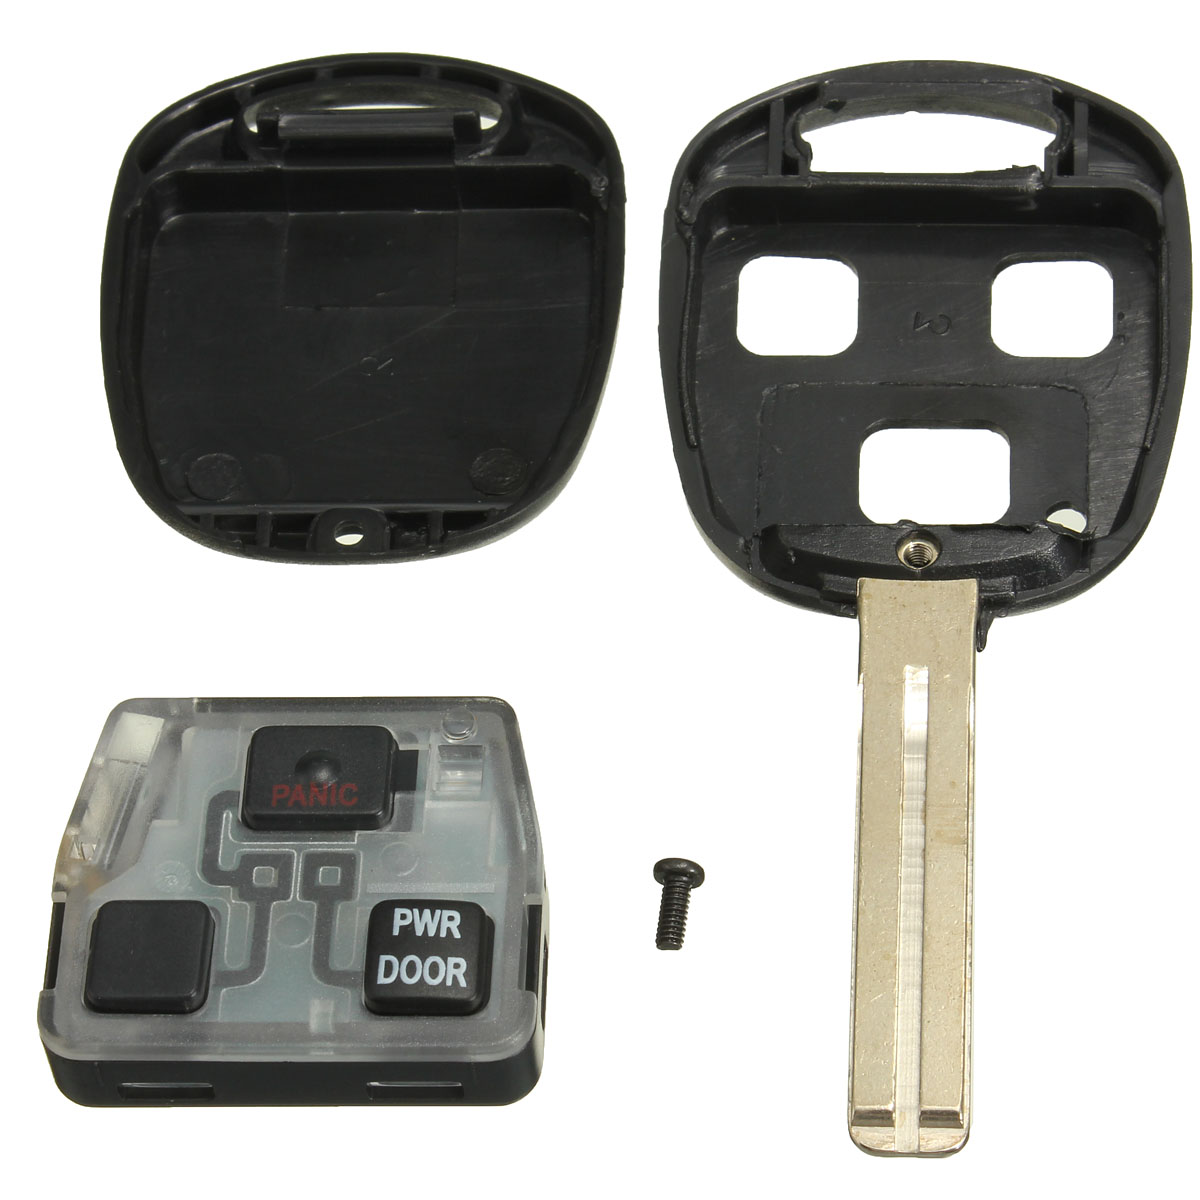 2010 lexus rx 350 key fob replacement